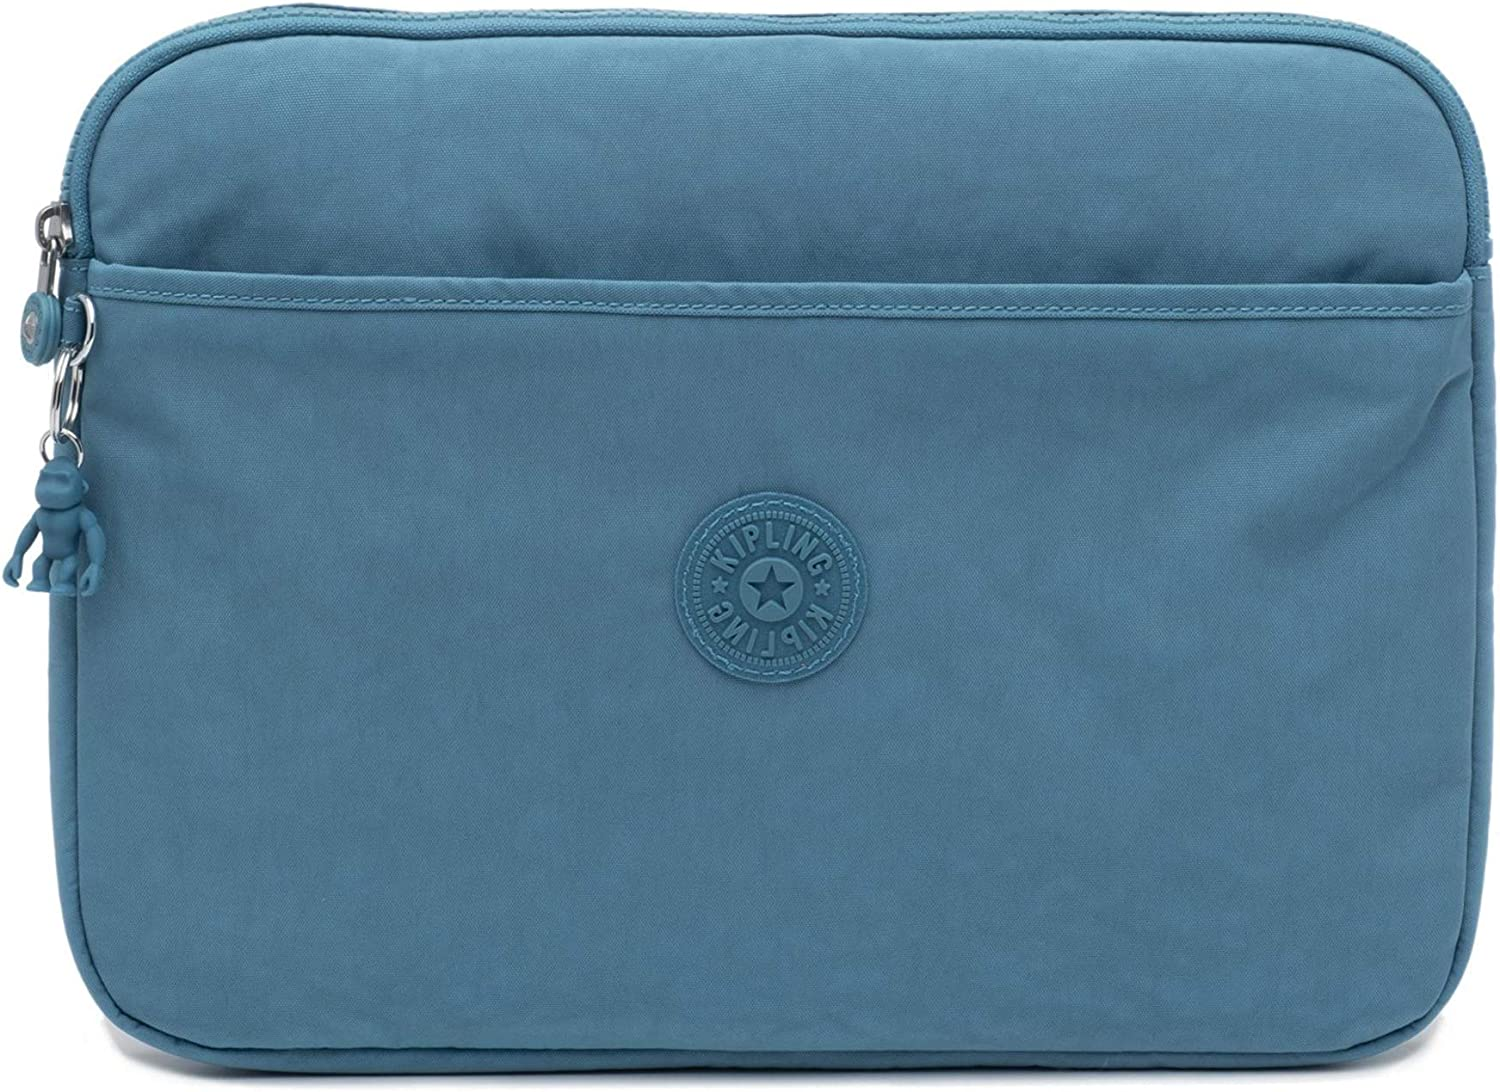 "Kipling 13"" Laptop Sleeve, Organizational Front Pocket, Zip Closure Messenger Bag"